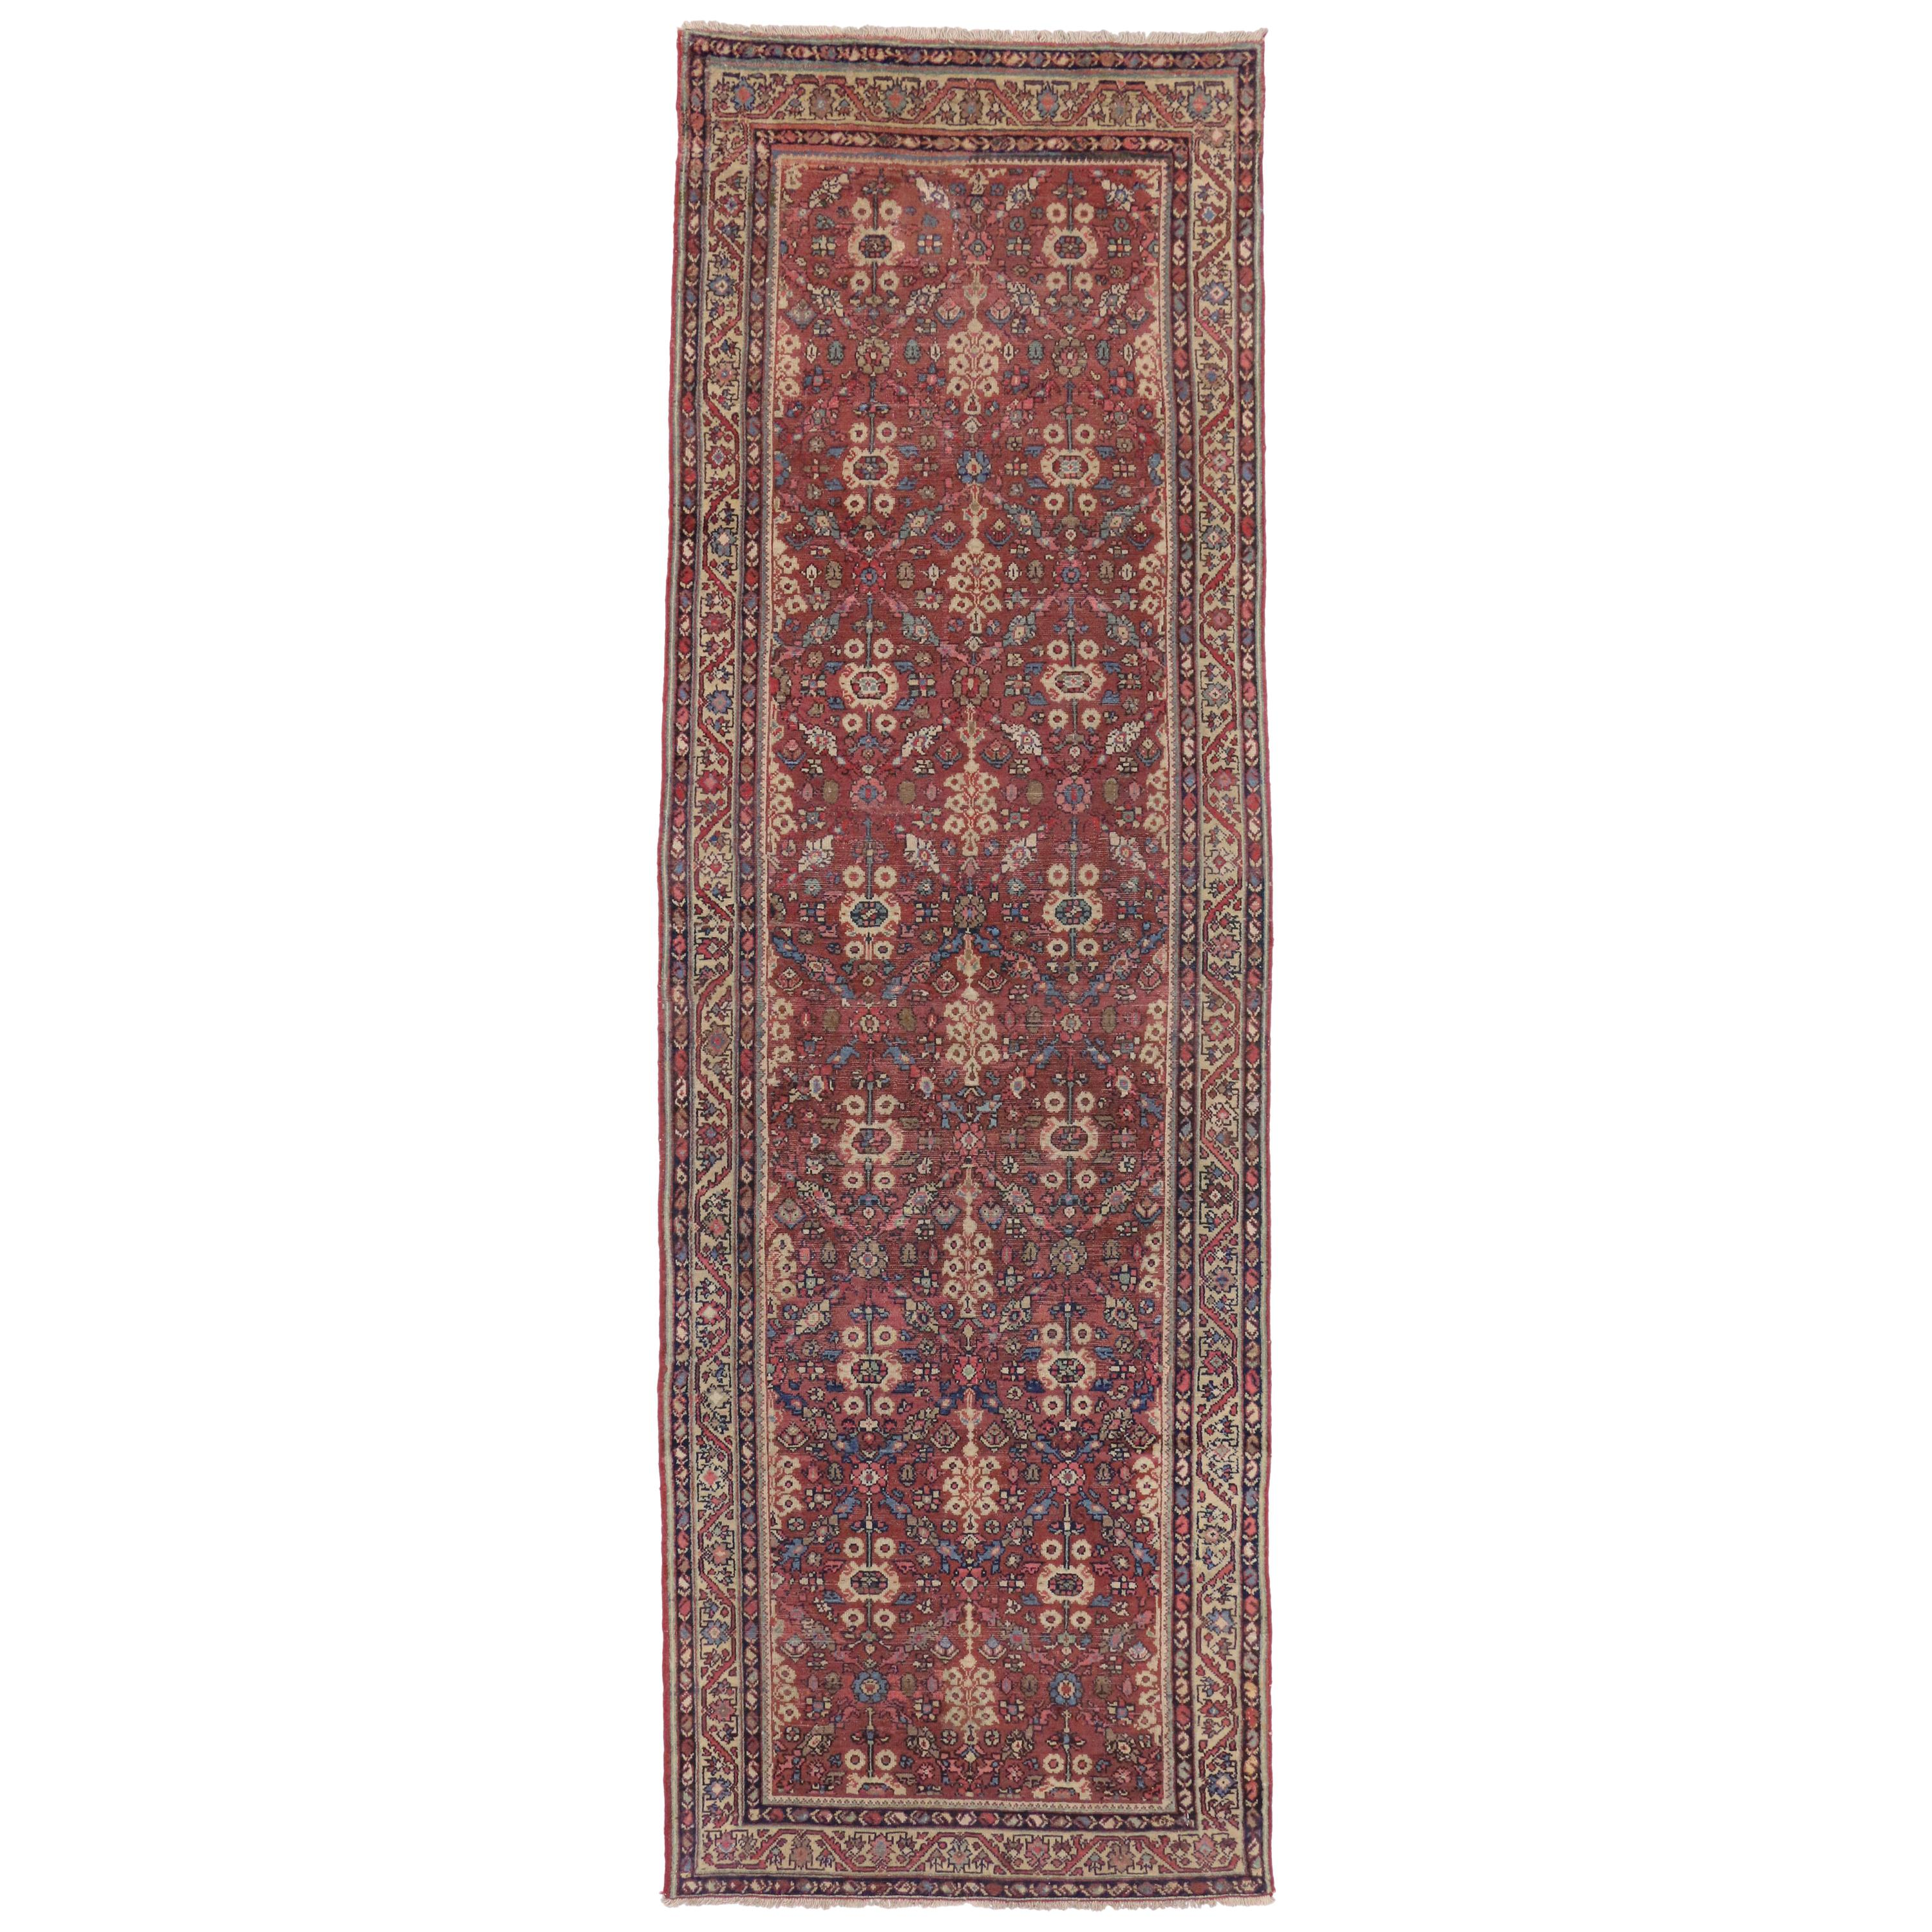 Antique Persian Hamadan Runner with Guli Hinnai Flower, Persian Hallway Runner